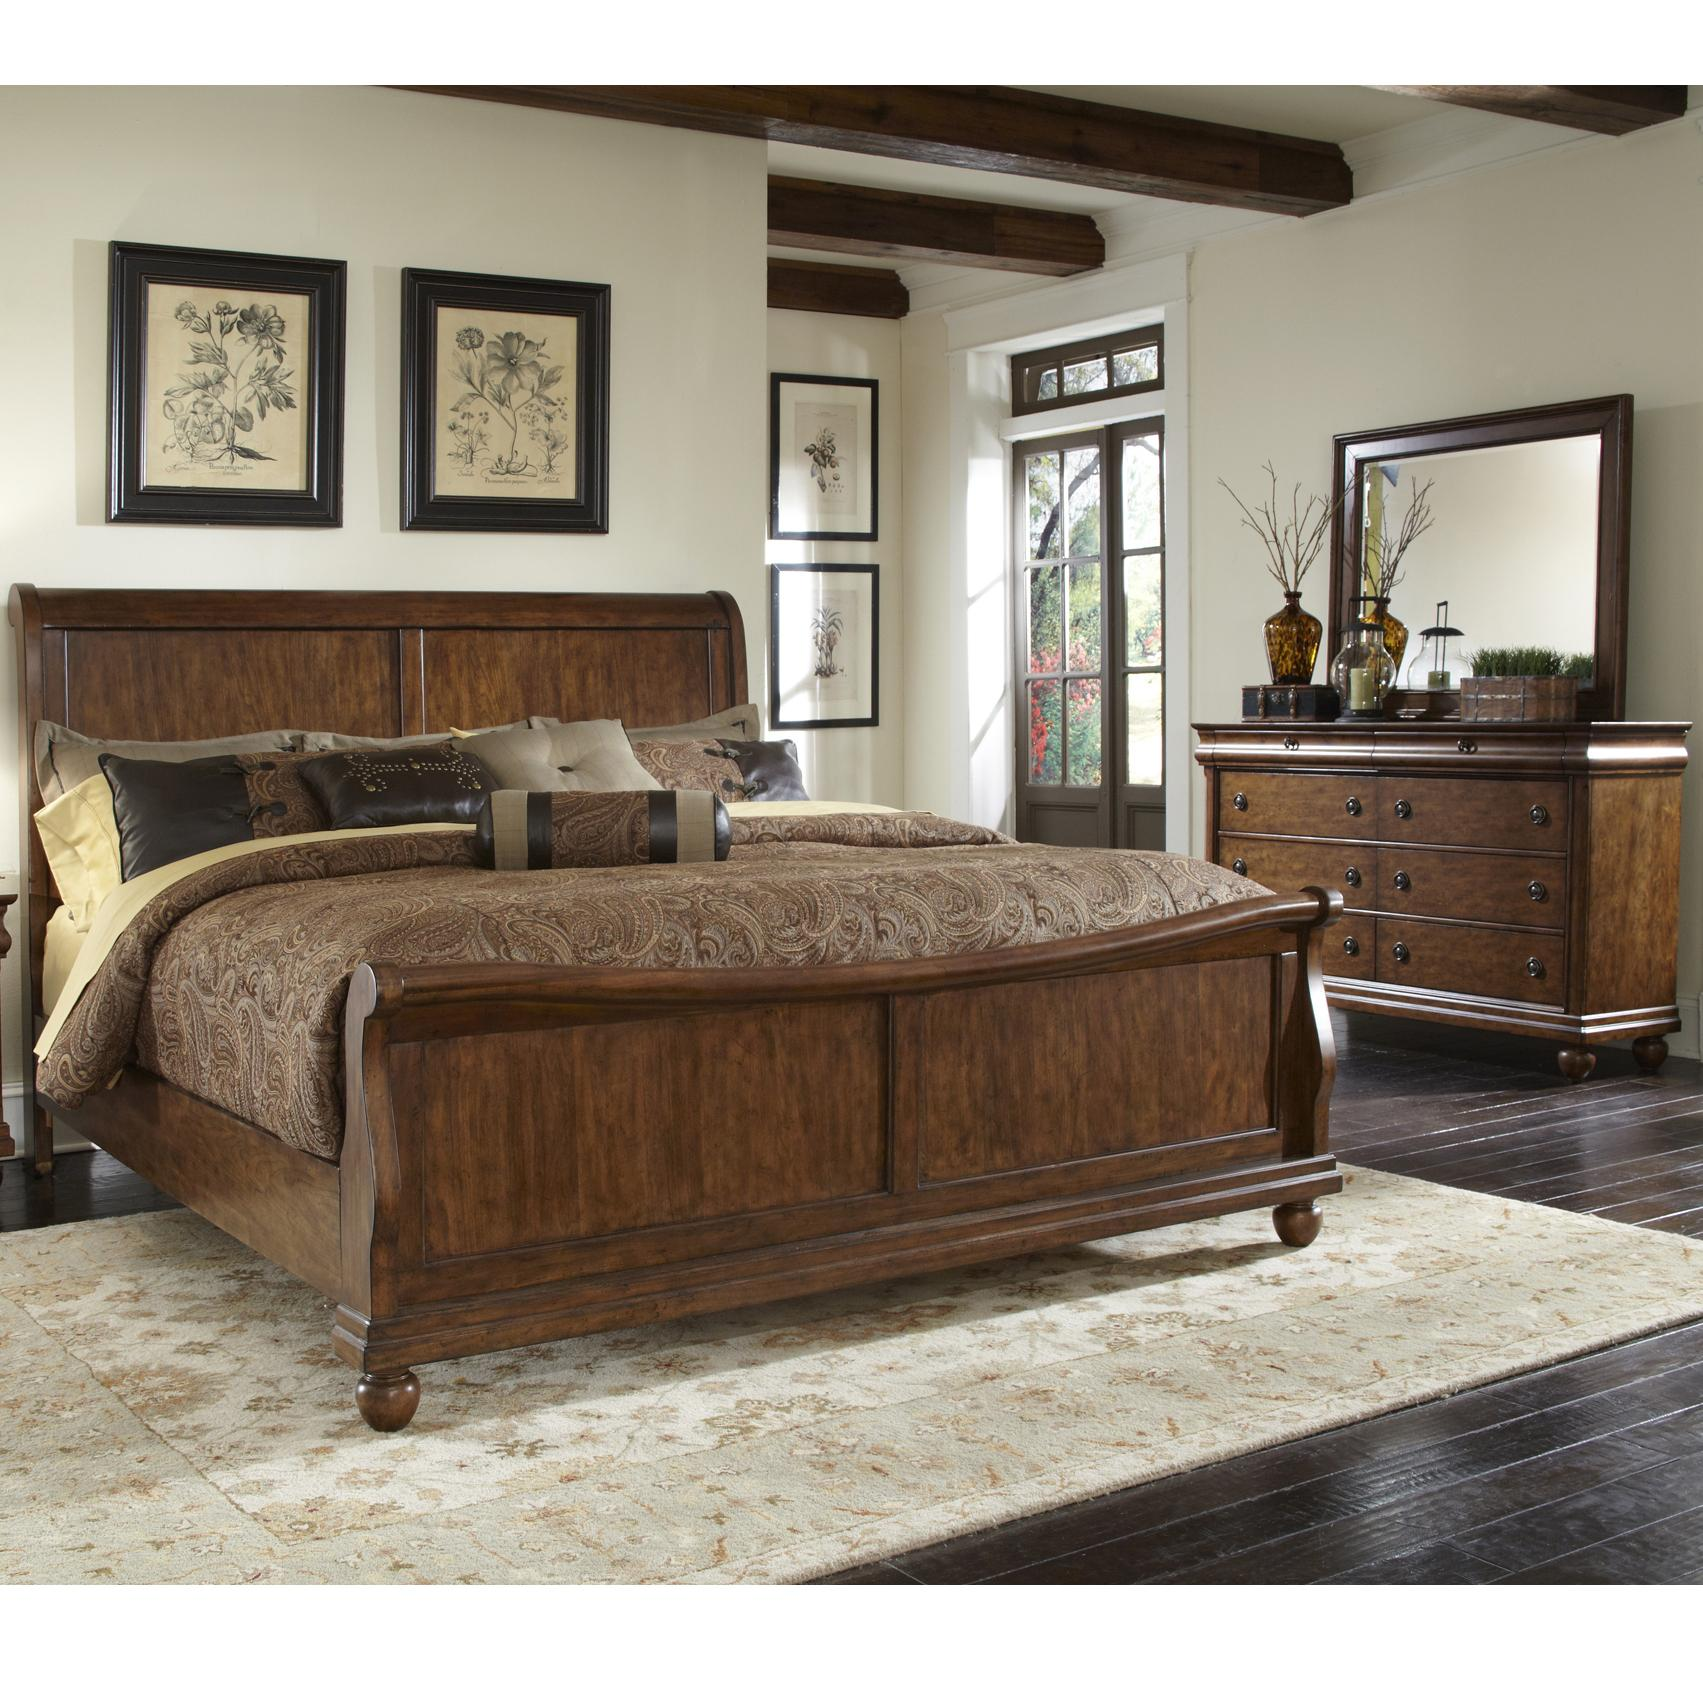 Liberty Furniture Rustic Traditions 589 Br Ksldm King Bedroom Group 1 Furniture And